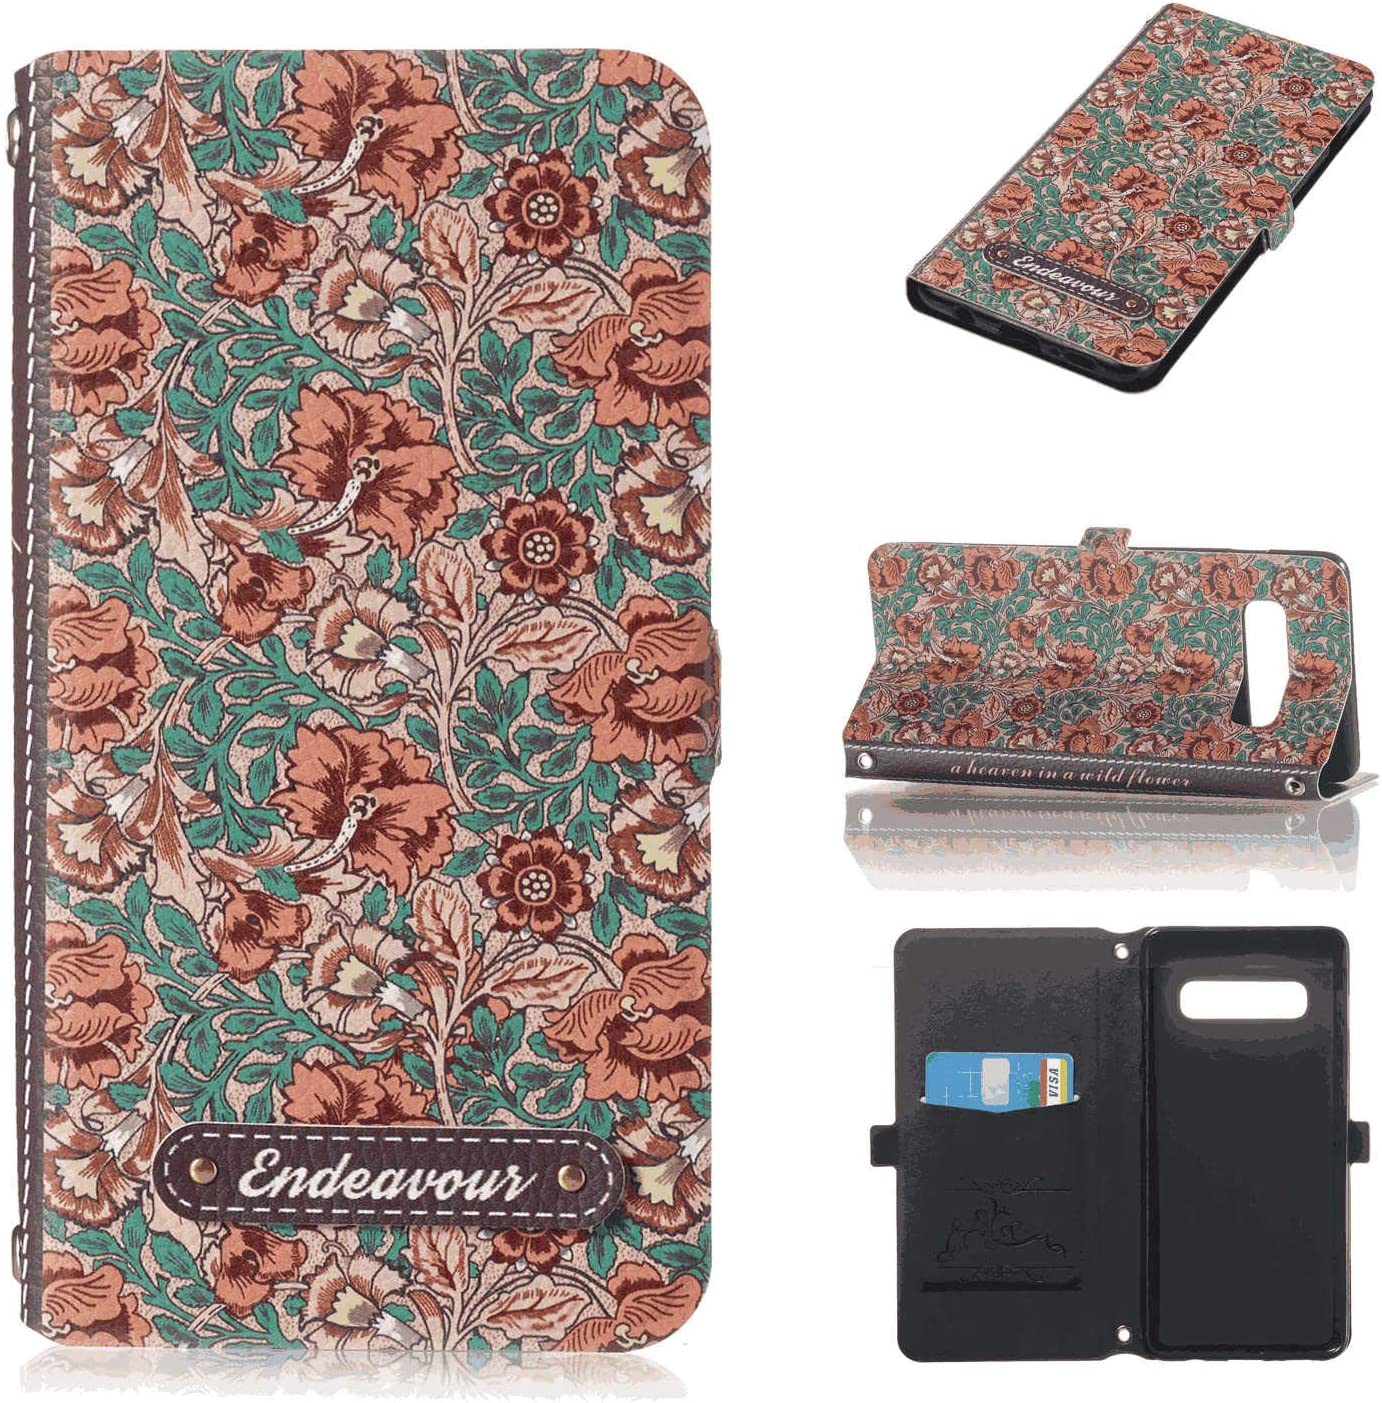 Business-Design Flip Cover for Samsung Galaxy S7 Edge PU Leather Case Compatible with Samsung Galaxy S7 Edge Cell Phone